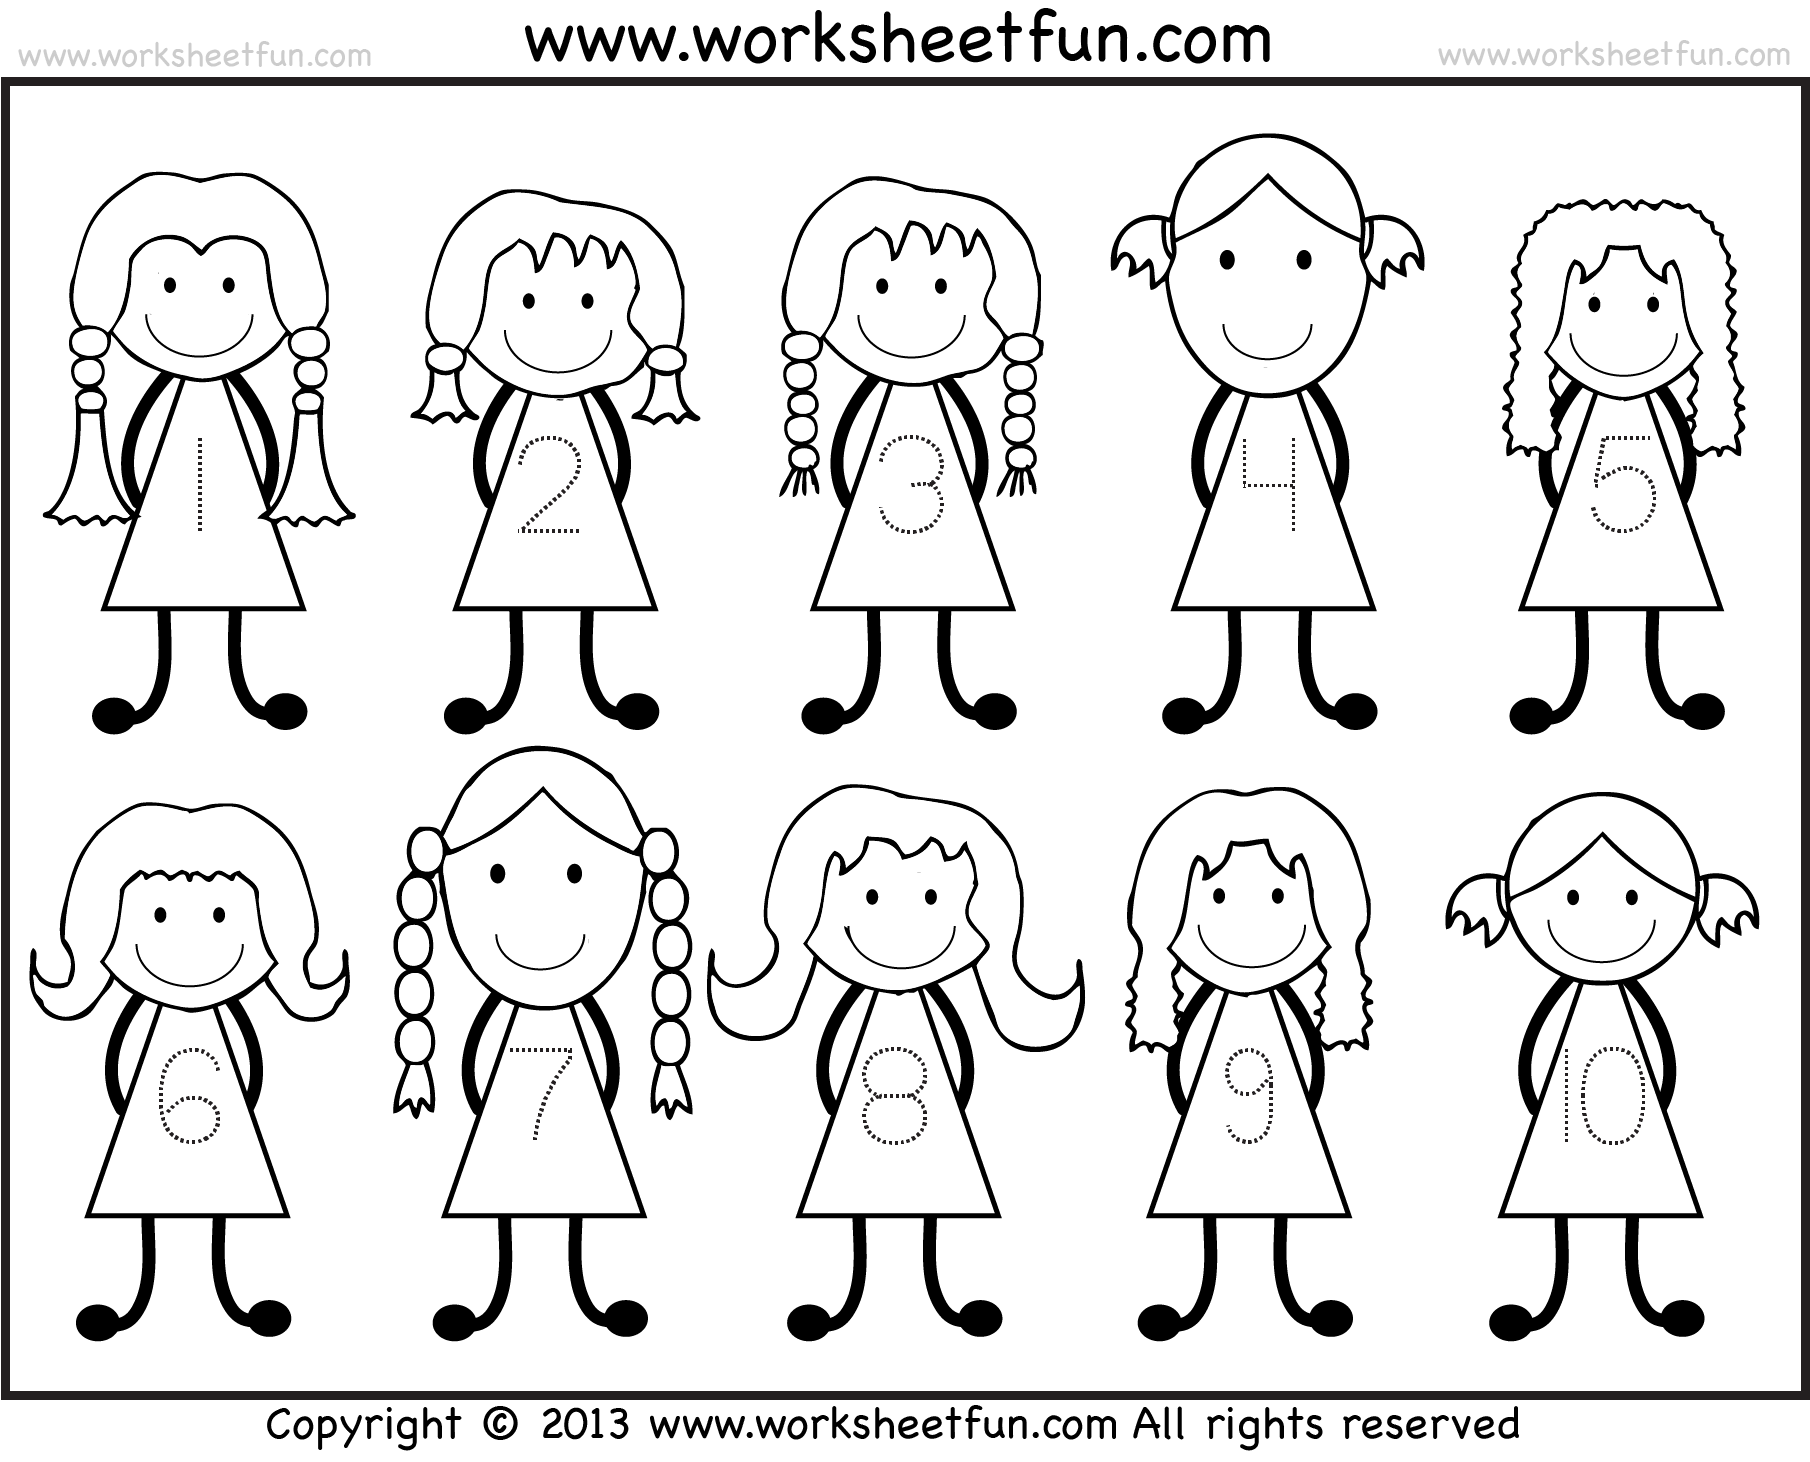 Number Tracing 110 Worksheet FREE Printable Worksheets – Number Tracing Worksheets 1-20